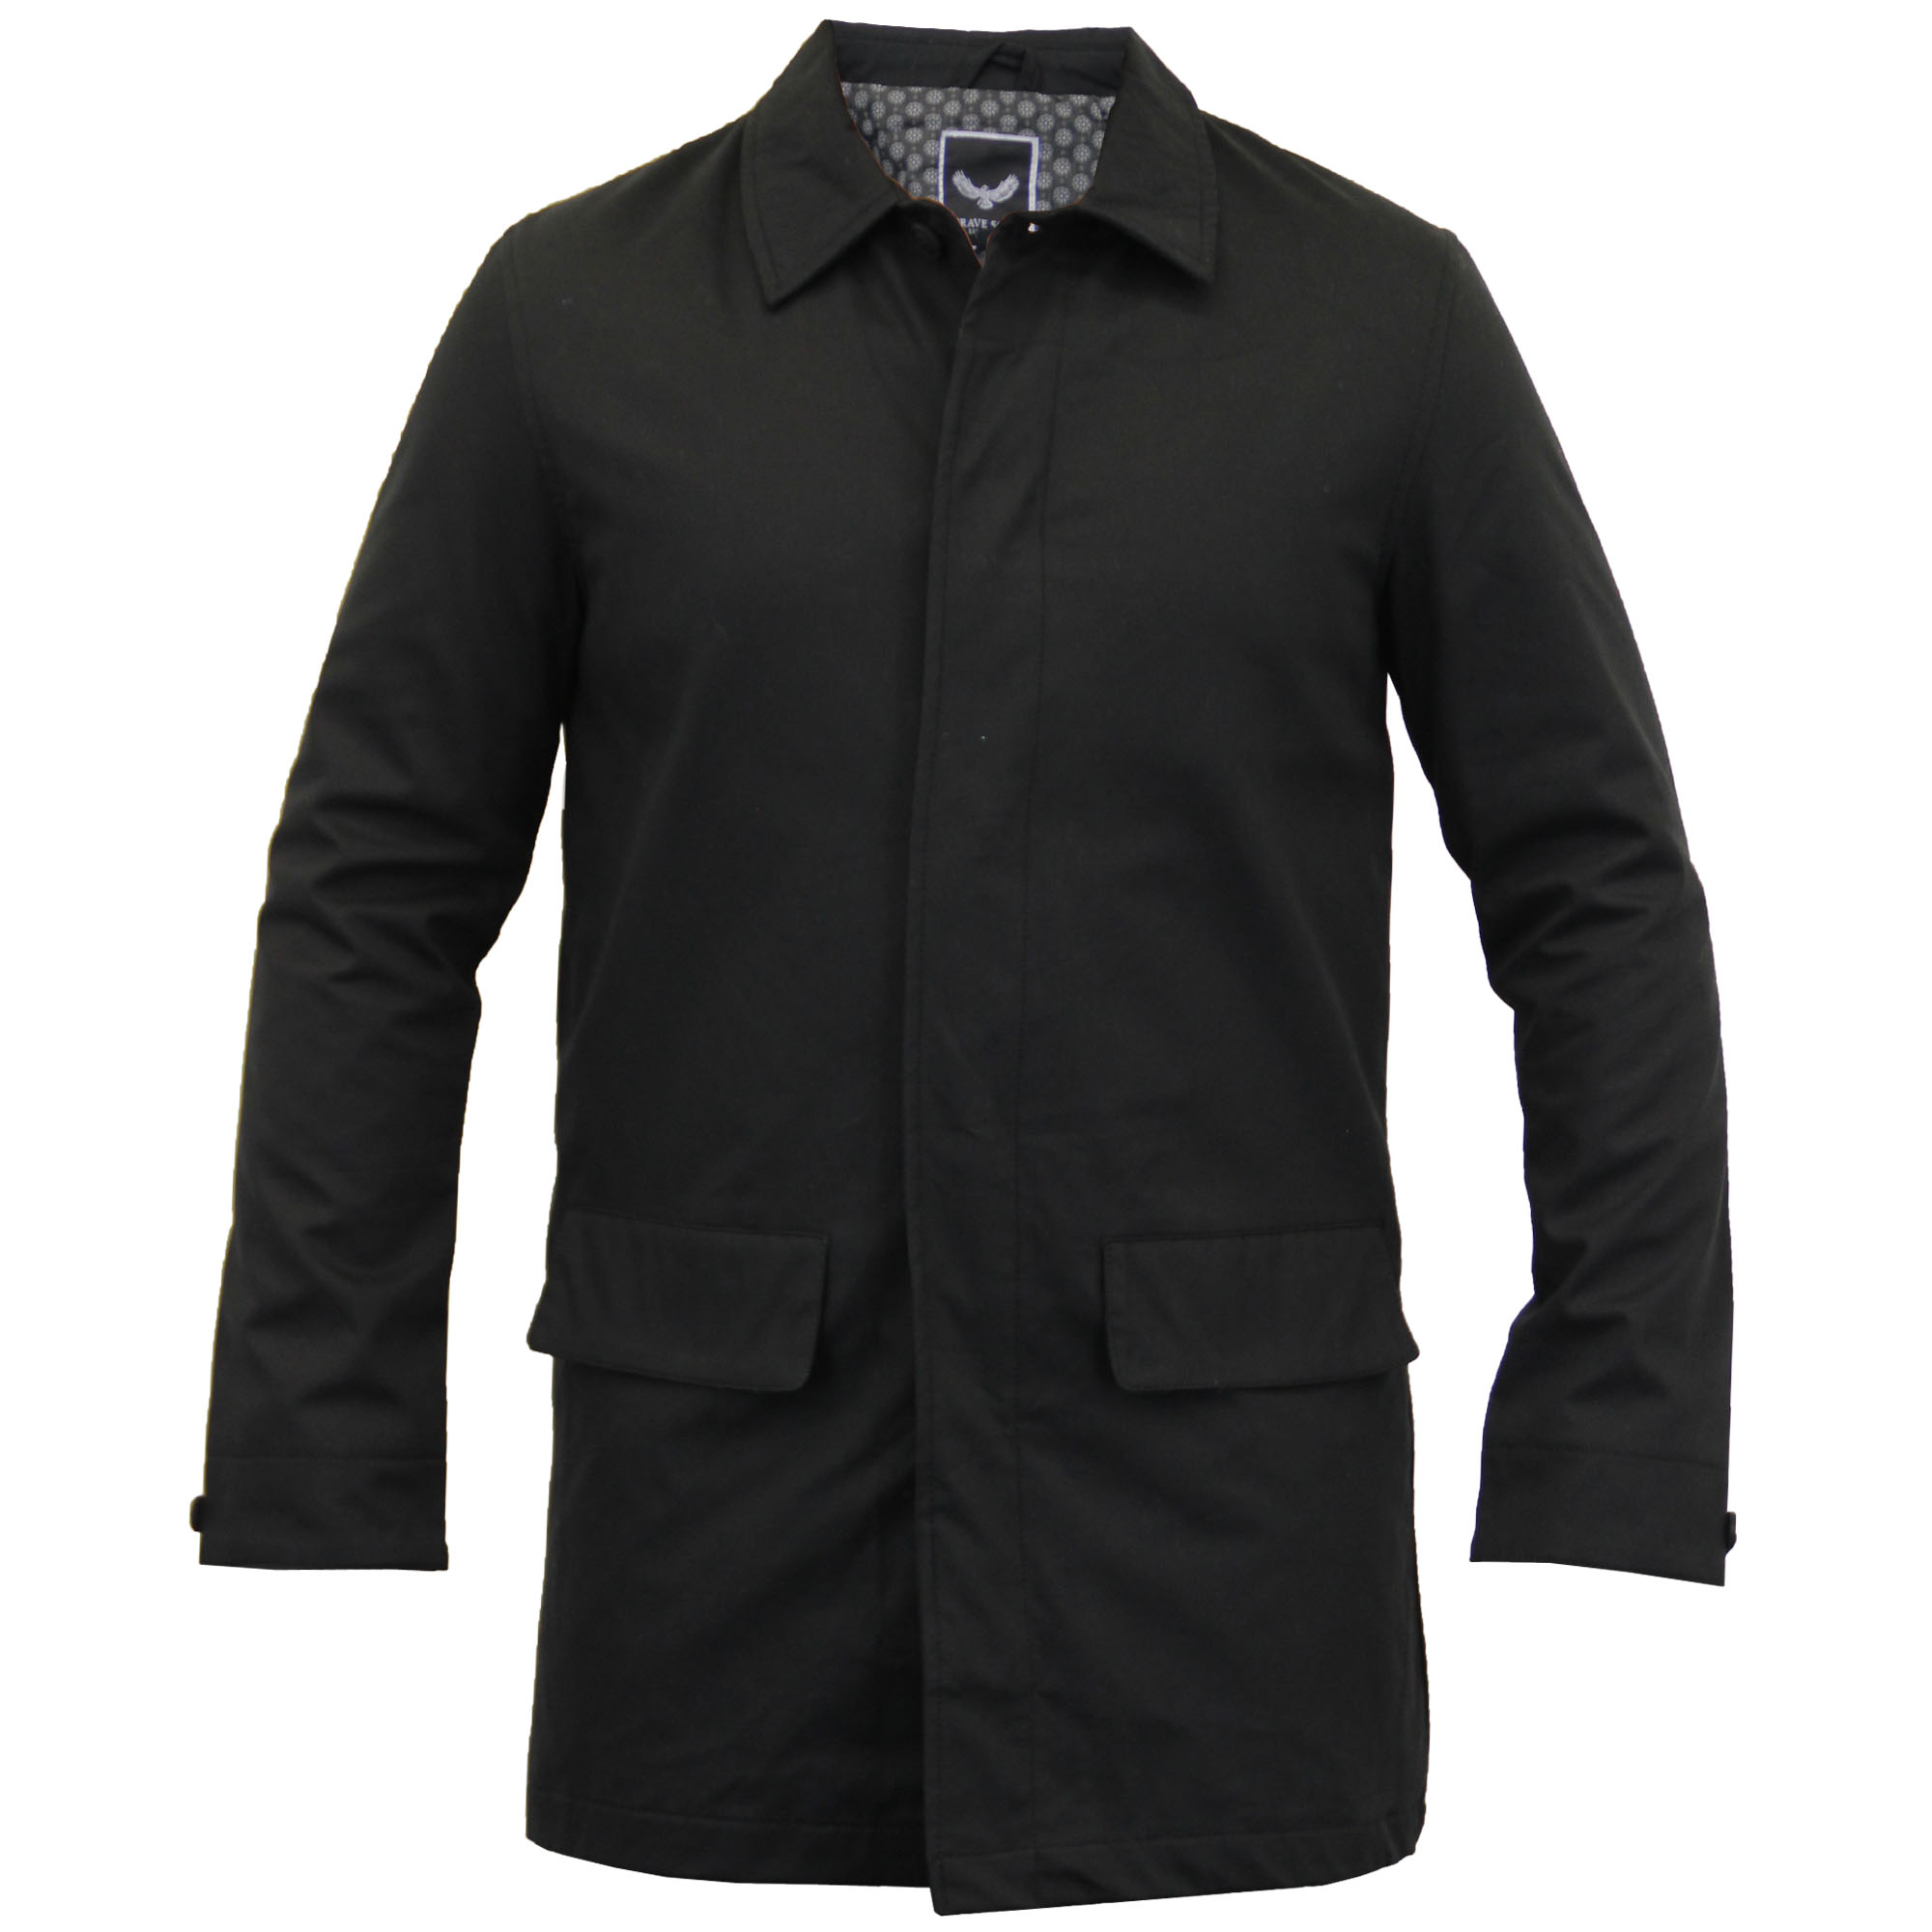 Mens jacket cotton - Mens Jackets Brave Soul Long Coat Mac Trench Cotton Smart Casual Lined Winter Stone Perth Large